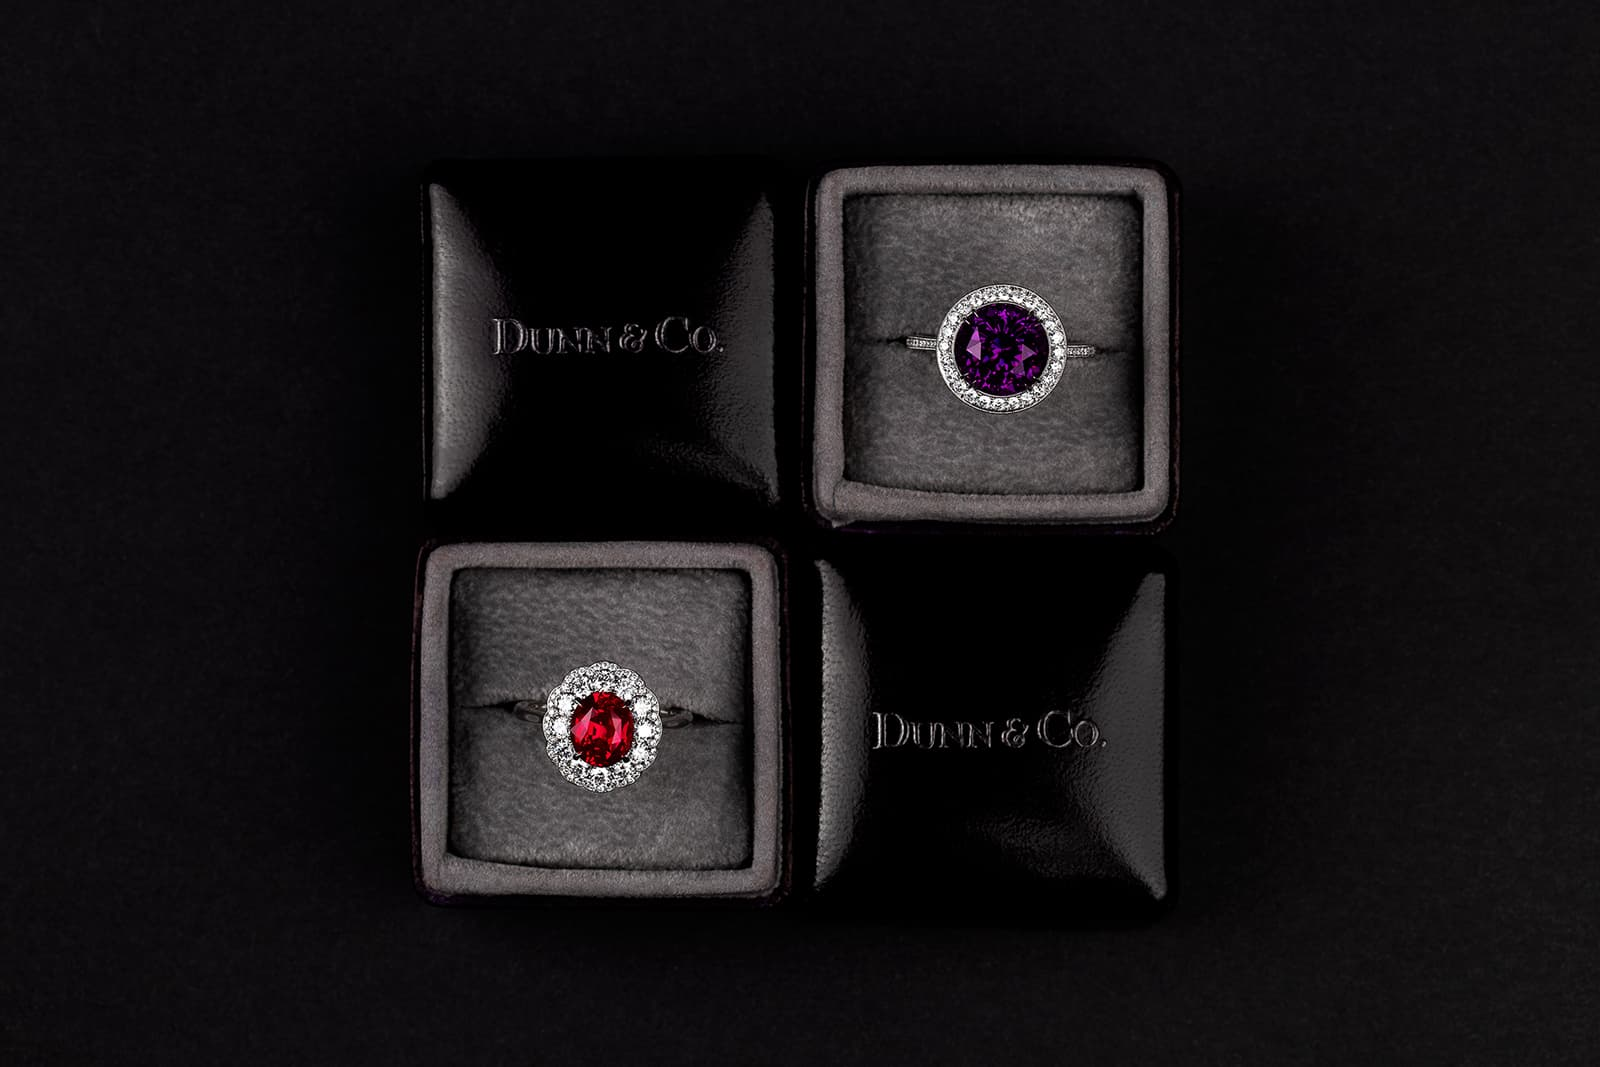 A qualified gemmologist, Dunn's designs are always inspired by the stones, which are the focal point of each jewel